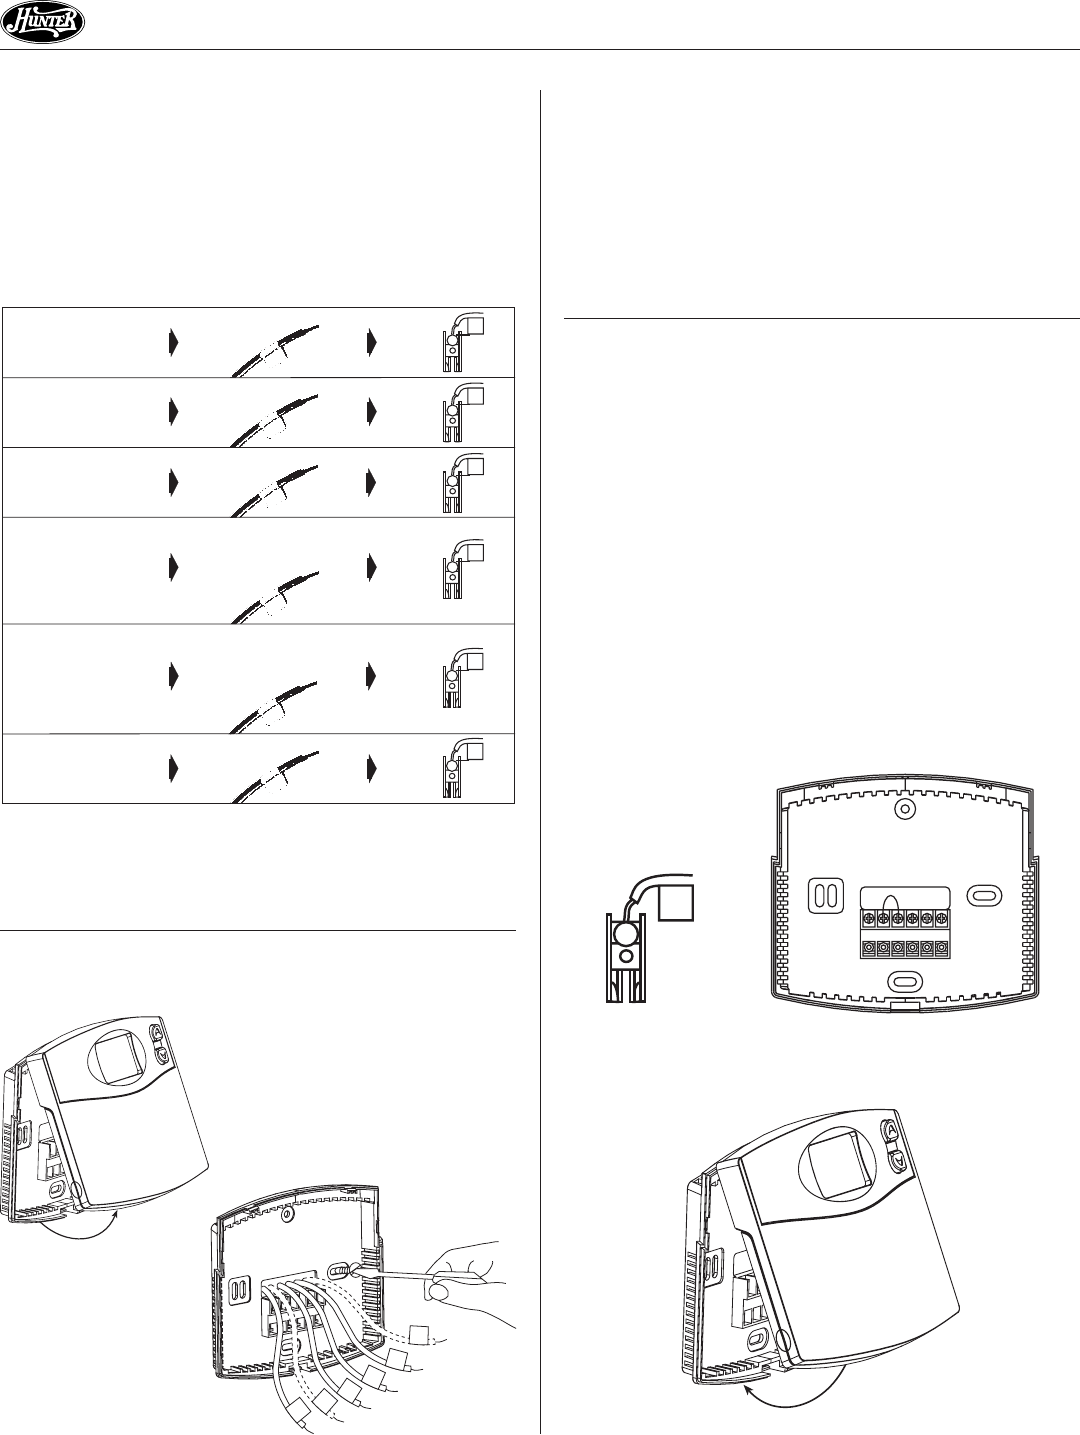 hunter thermostat wiring diagram wiring diagram page 3 of hunter fan thermostat 44260 user manuals hunter thermostat wiring diagram 44260 diagrams